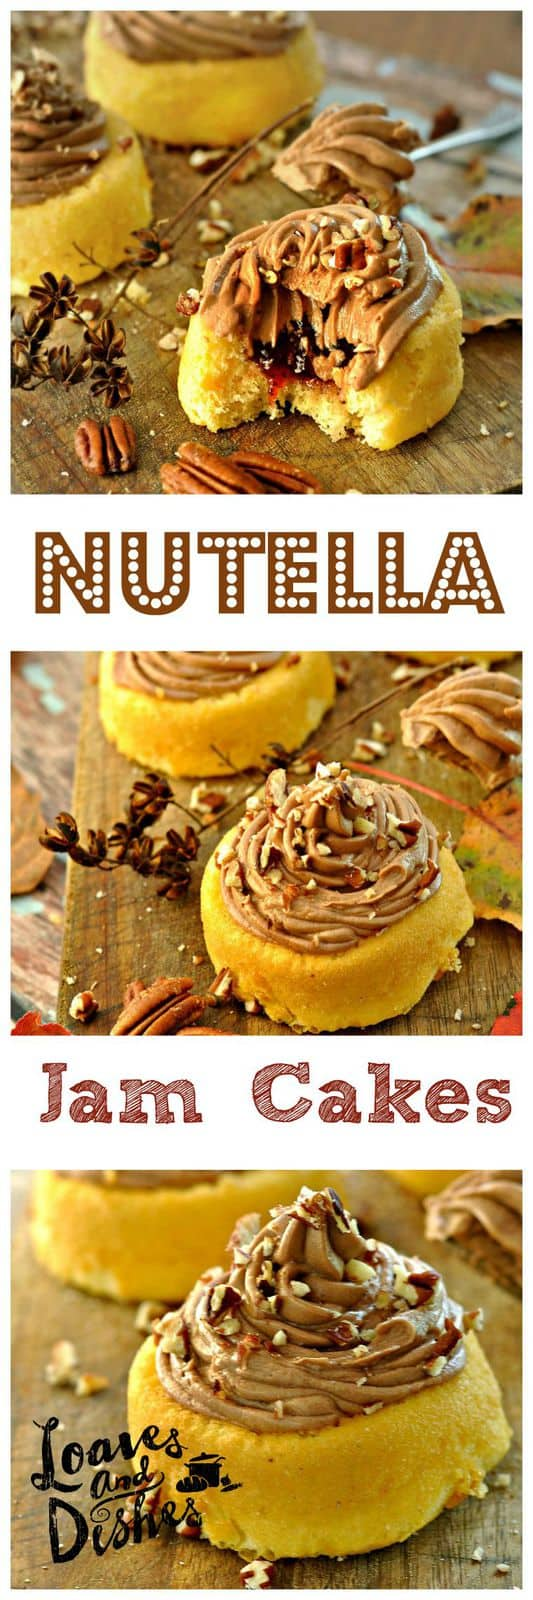 Sweet little cakes - the perfect after school treat! Make for a party instead of cupcakes! Everyone LOVES Nutella! Try these today! www.loavesanddishes.net